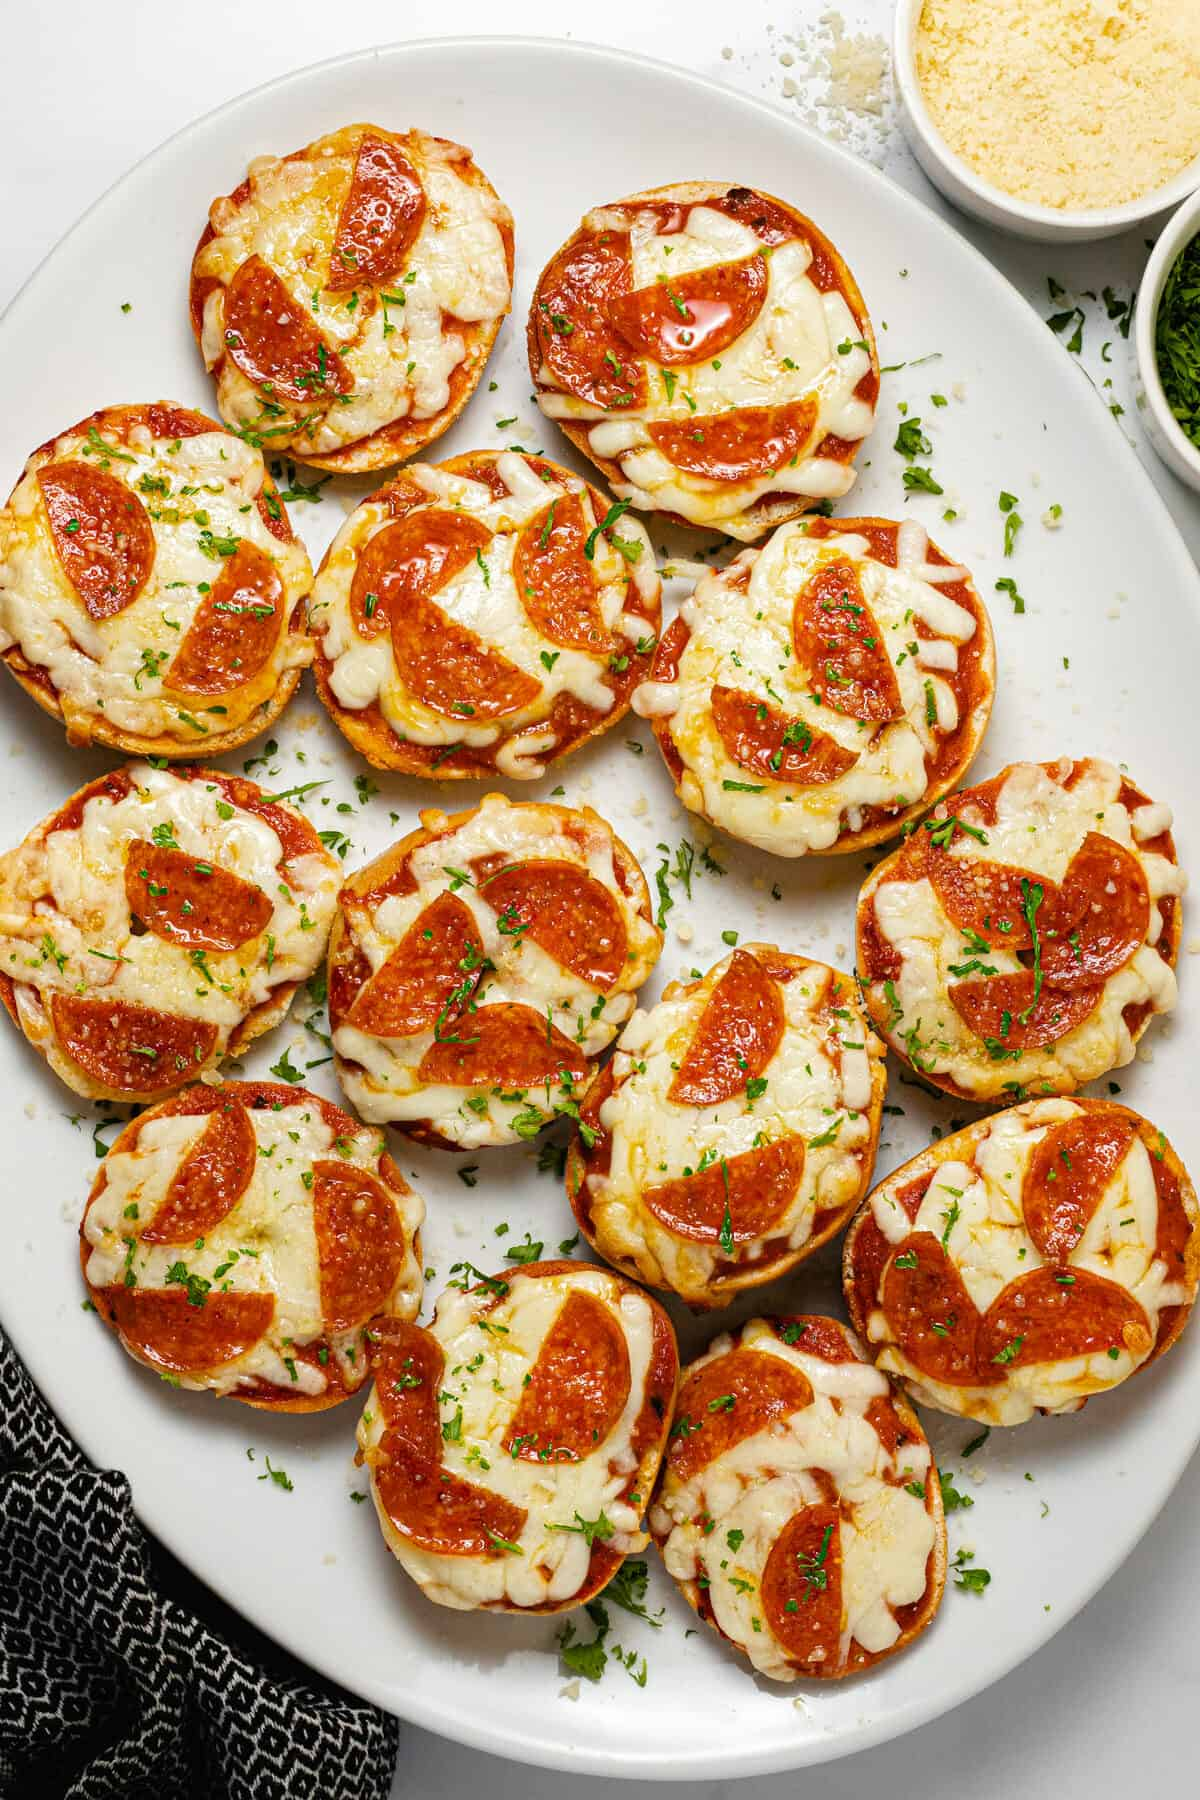 Large white platter filled with homemade pizza bagel bites garnished with parsley